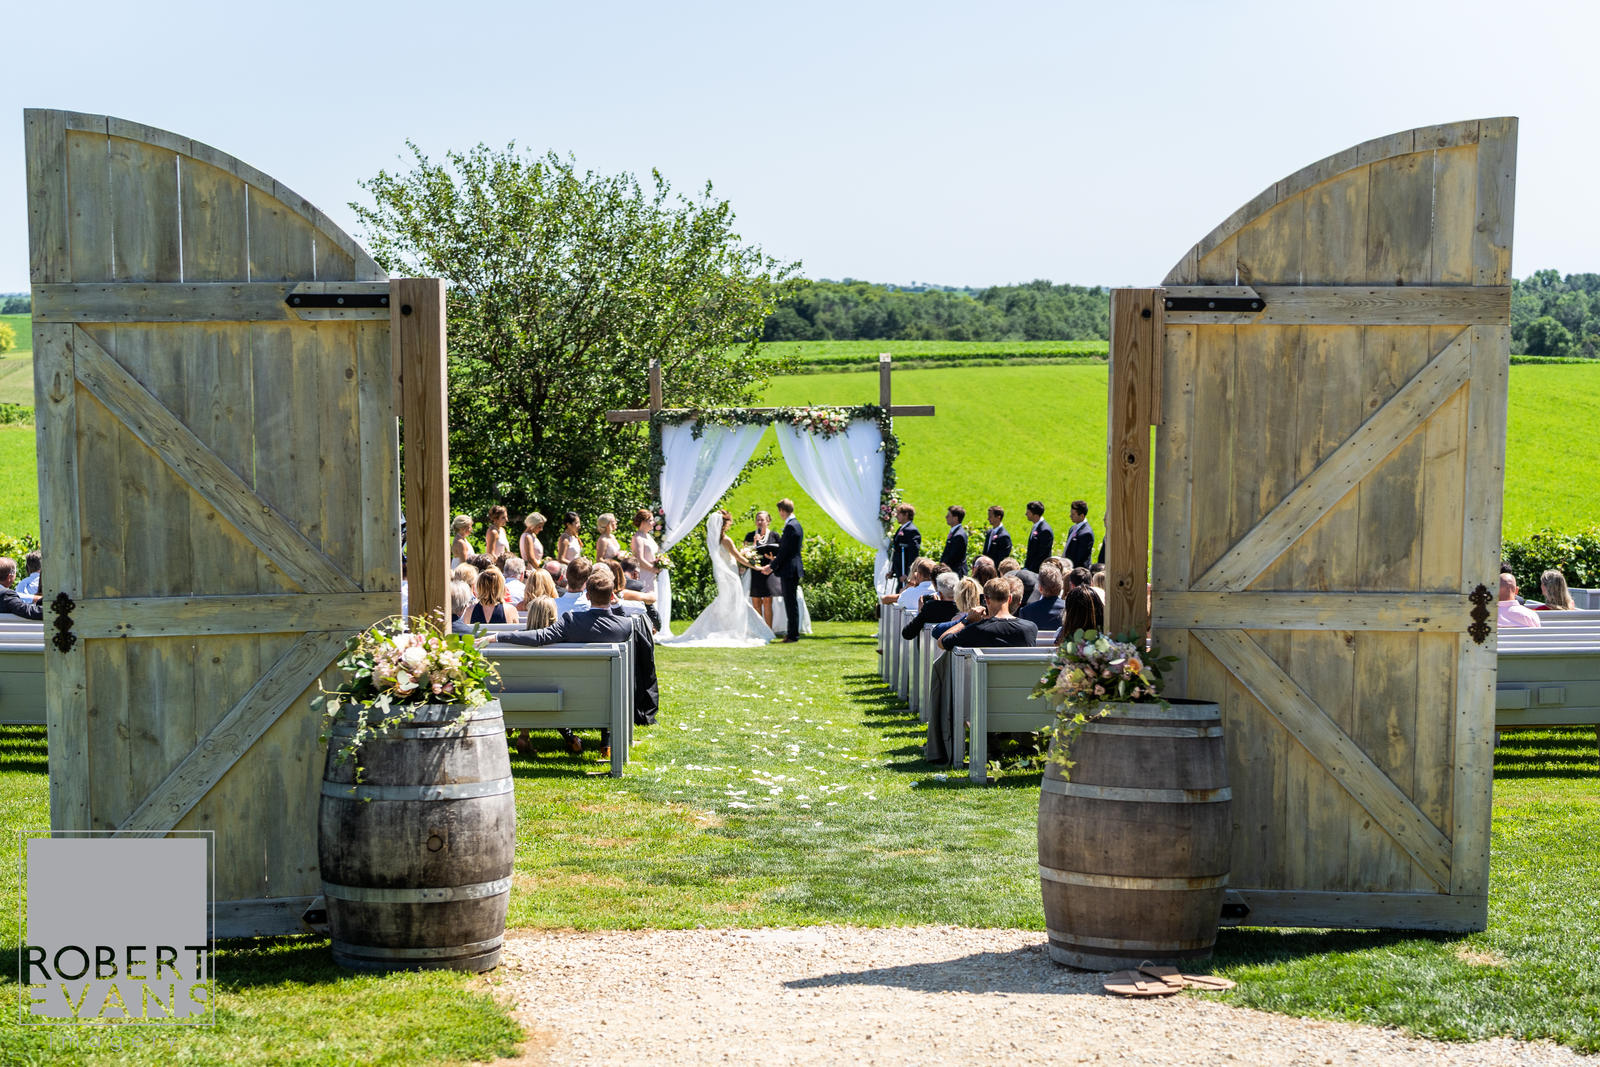 Ceremony arch decorated with white curtains pulled back and greenery to frame